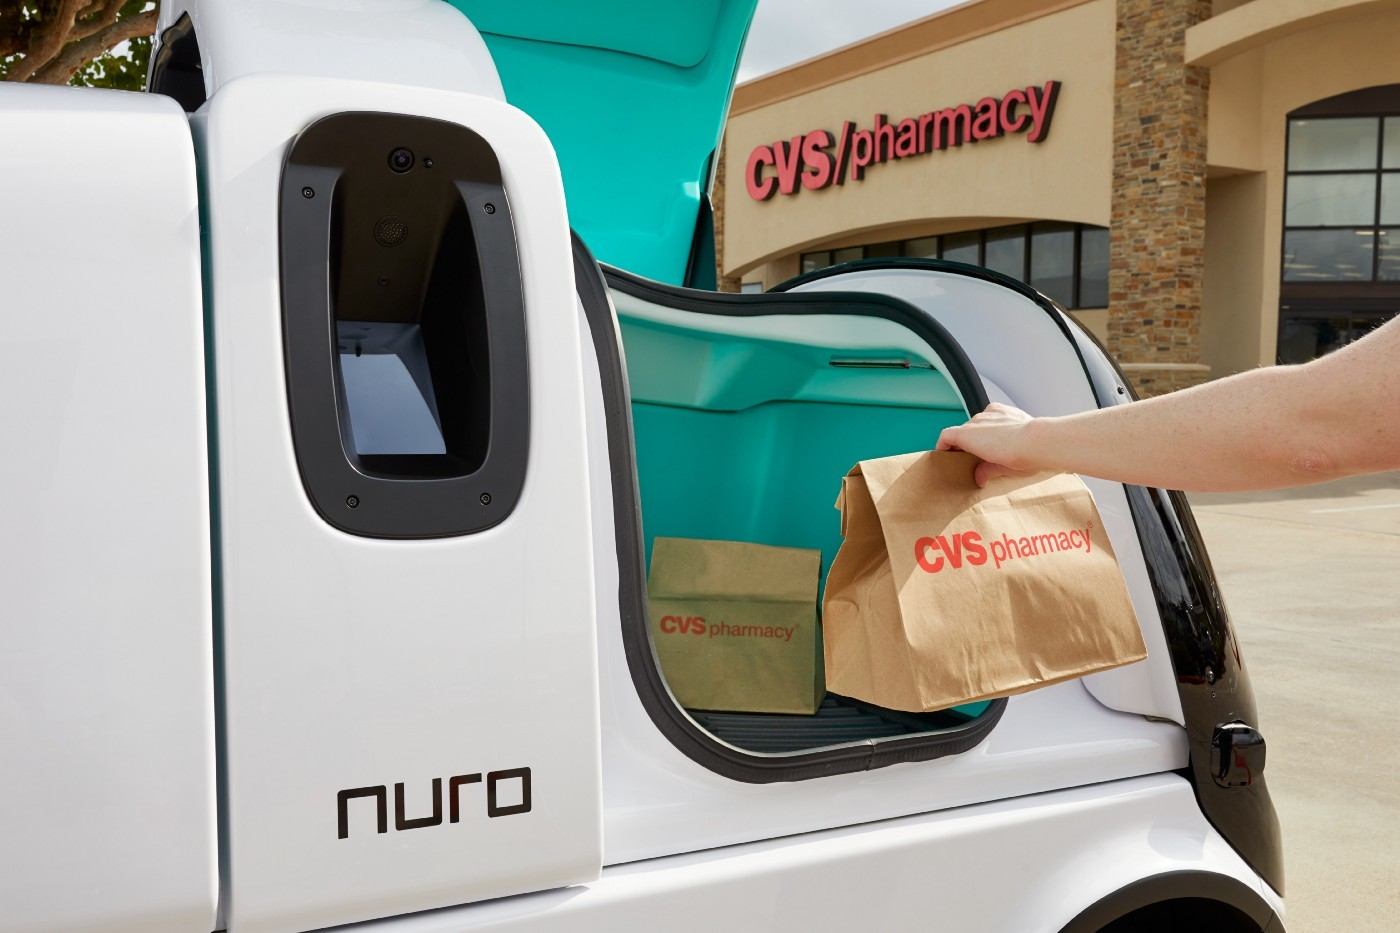 Startup Nuro has entered an agreement with CVS to deliver prescriptions using autonomous vehicles